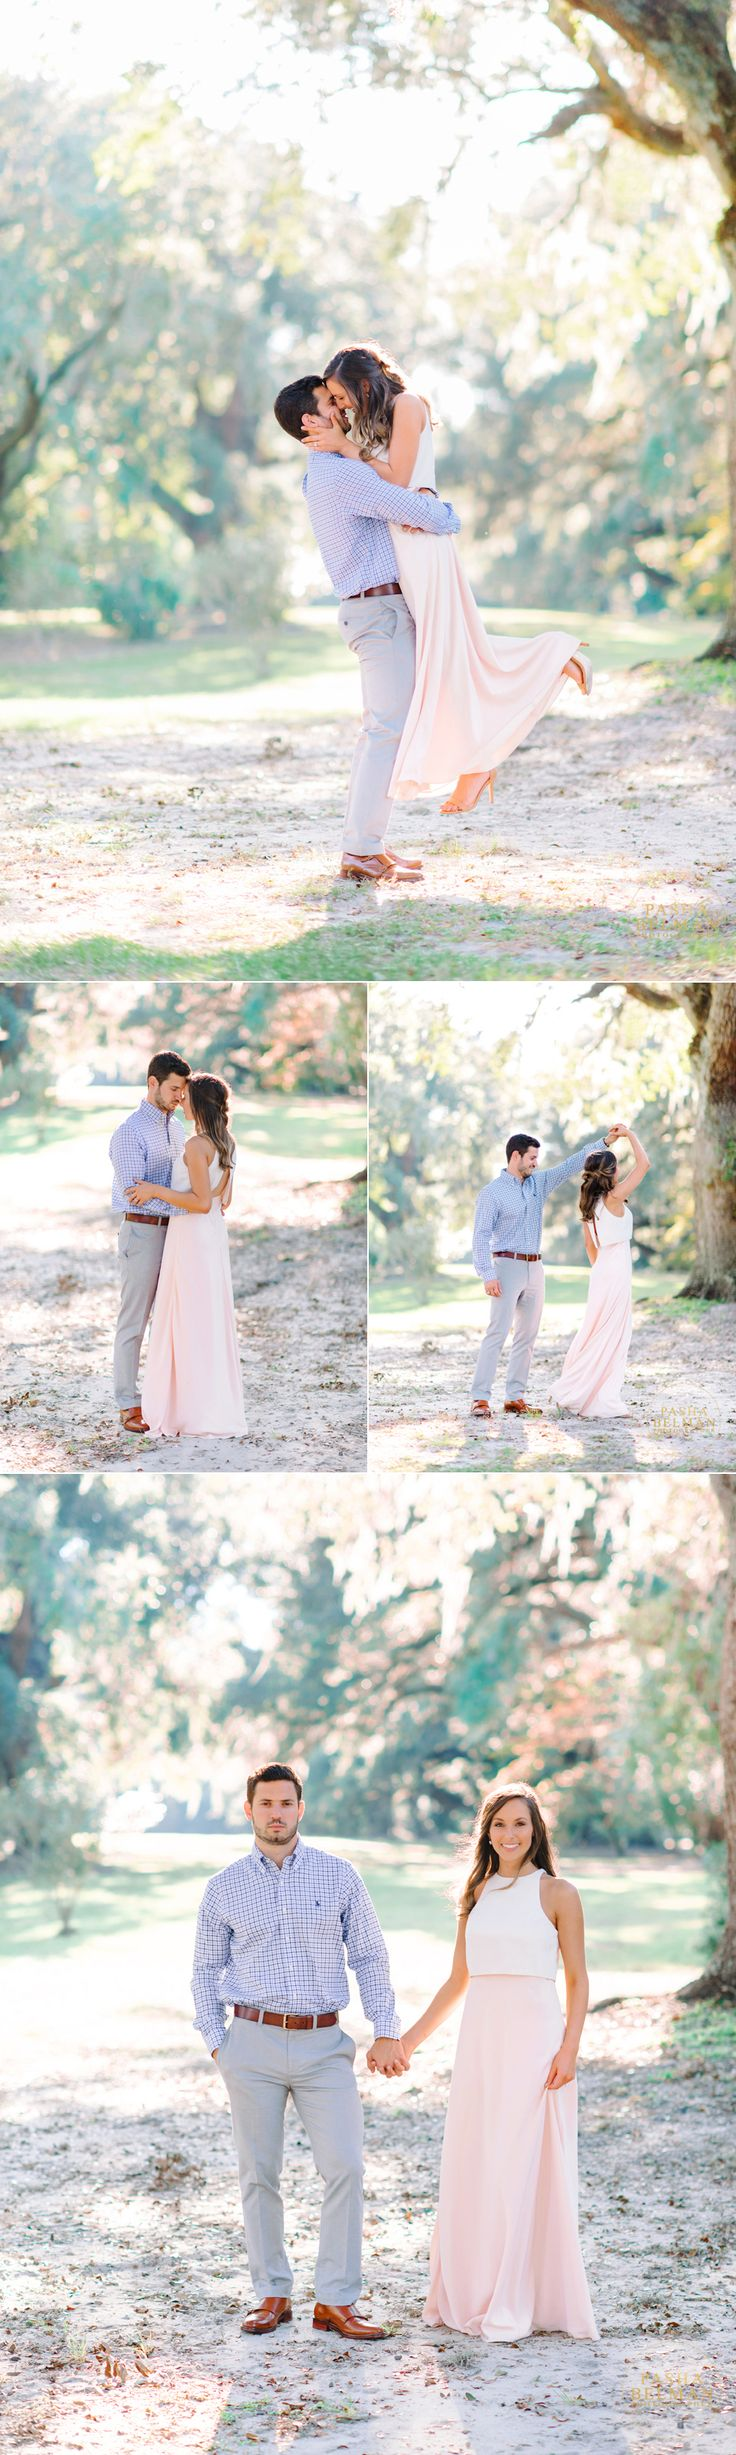 Mansfield Plantation | Live Oaks | Fine Art Film Inspired Photography | Engagement Photography | Charleston | Georgetown | Myrtle Beach | Engagement Photography Idea with Dogs | Film Inspired Engagement Photography | Spanish Moss Engagement Session